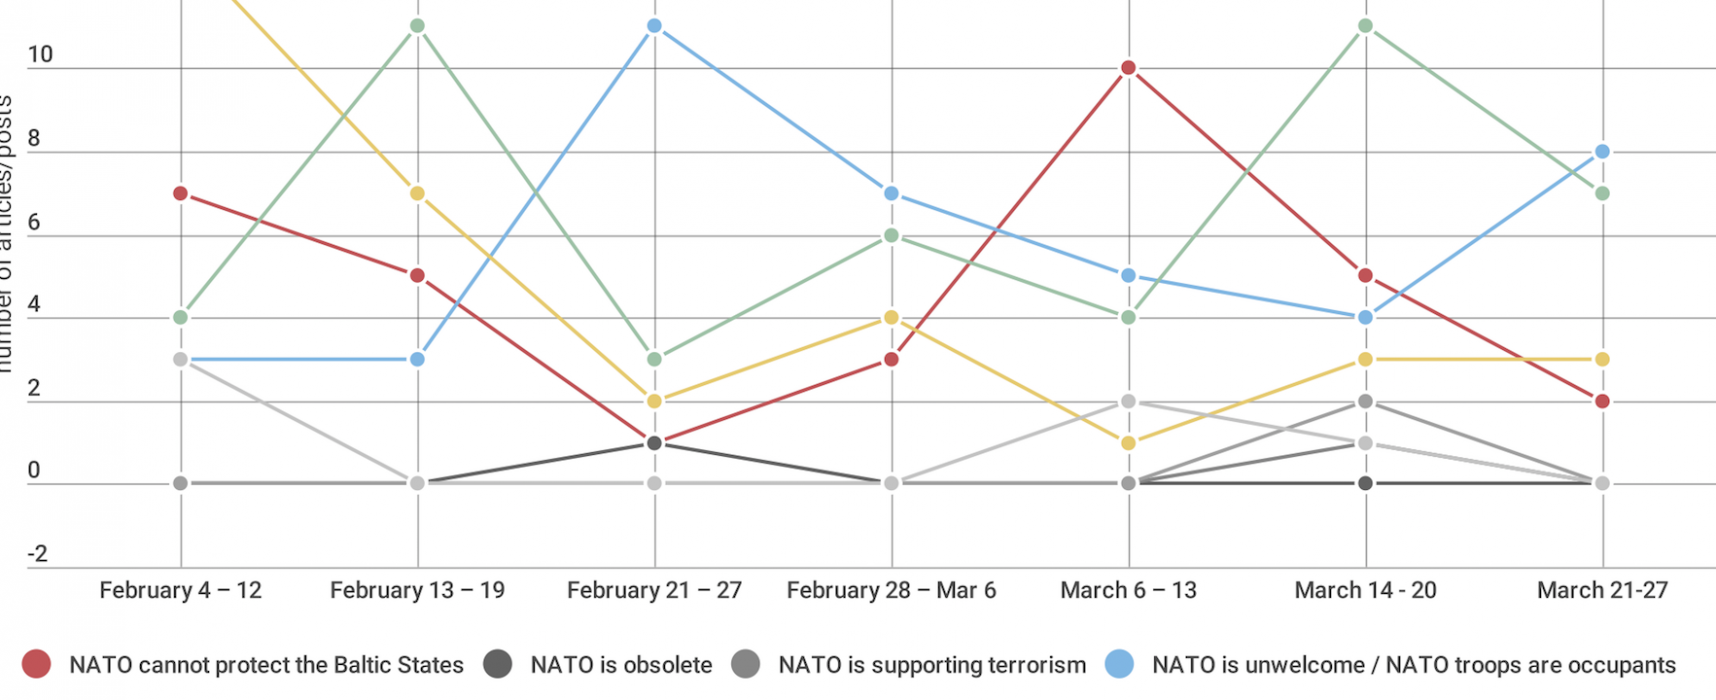 Russian Narratives on NATO's Deployment